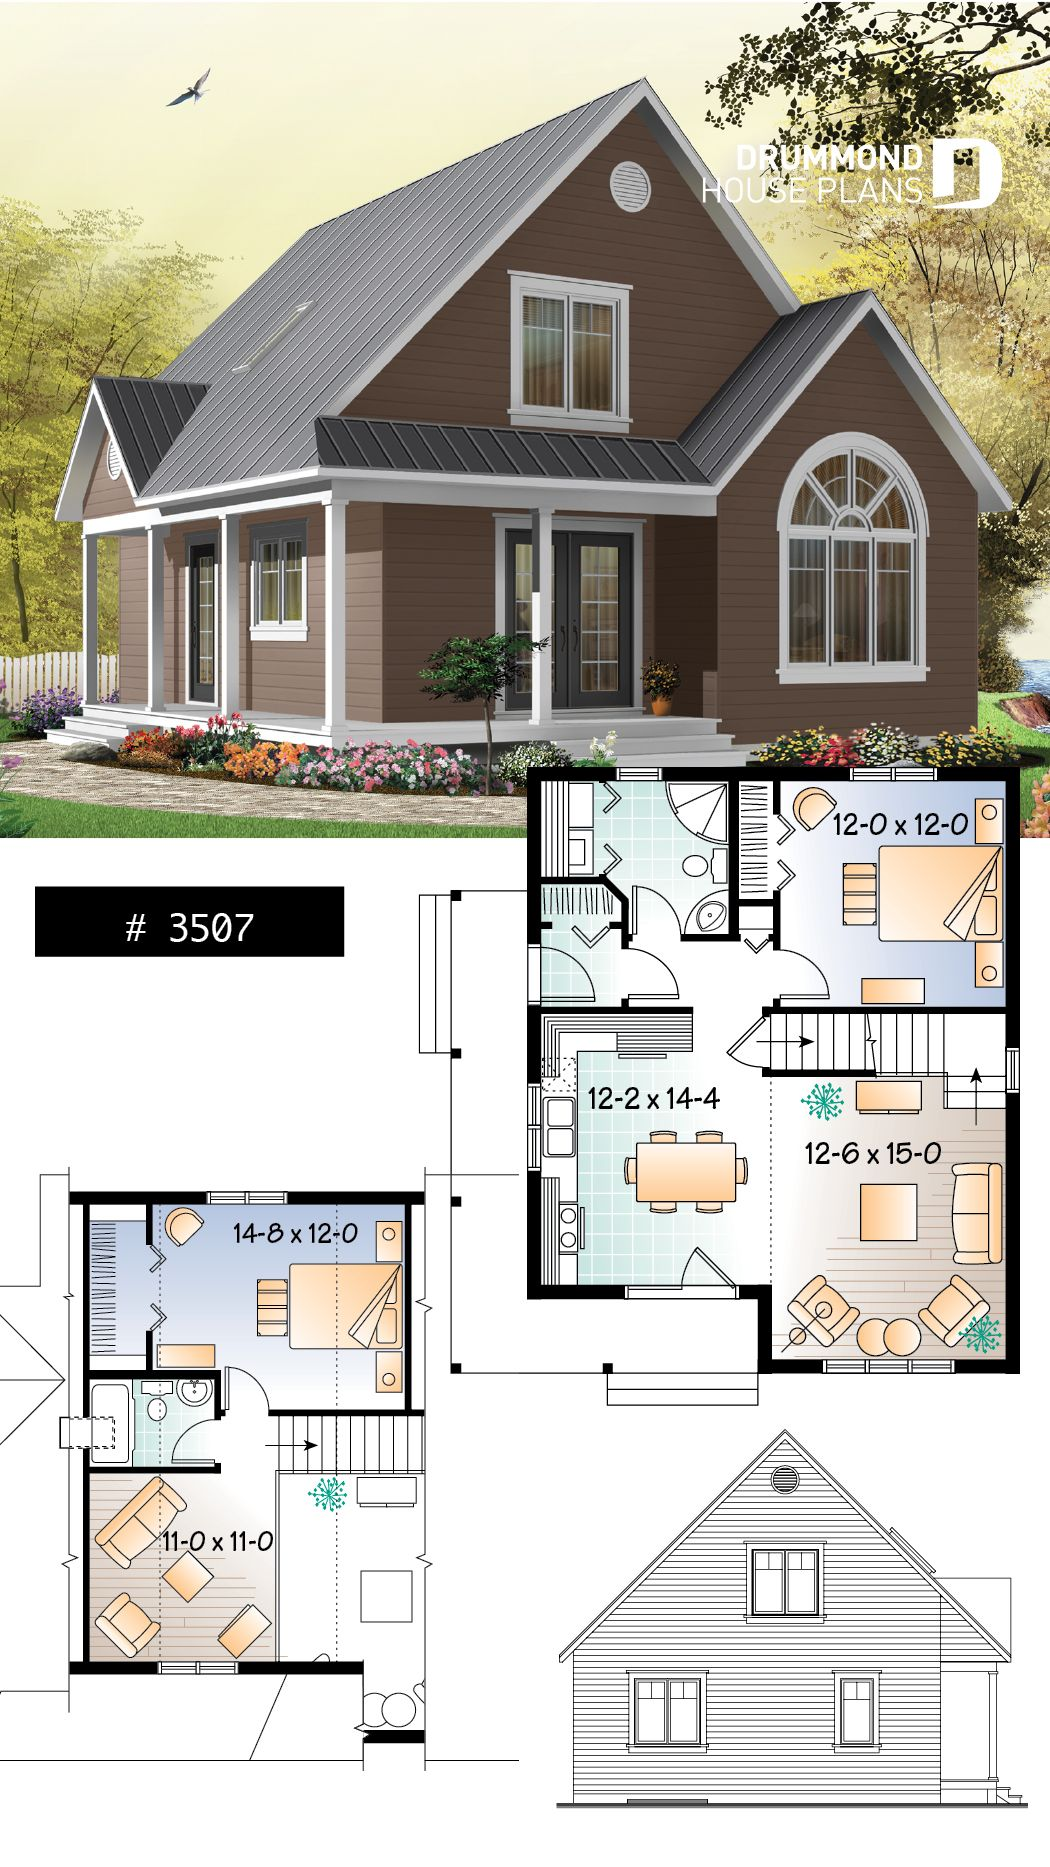 Discover the plan 3507 Celeste which will please you for its 2 3 bedrooms and for its Country styles